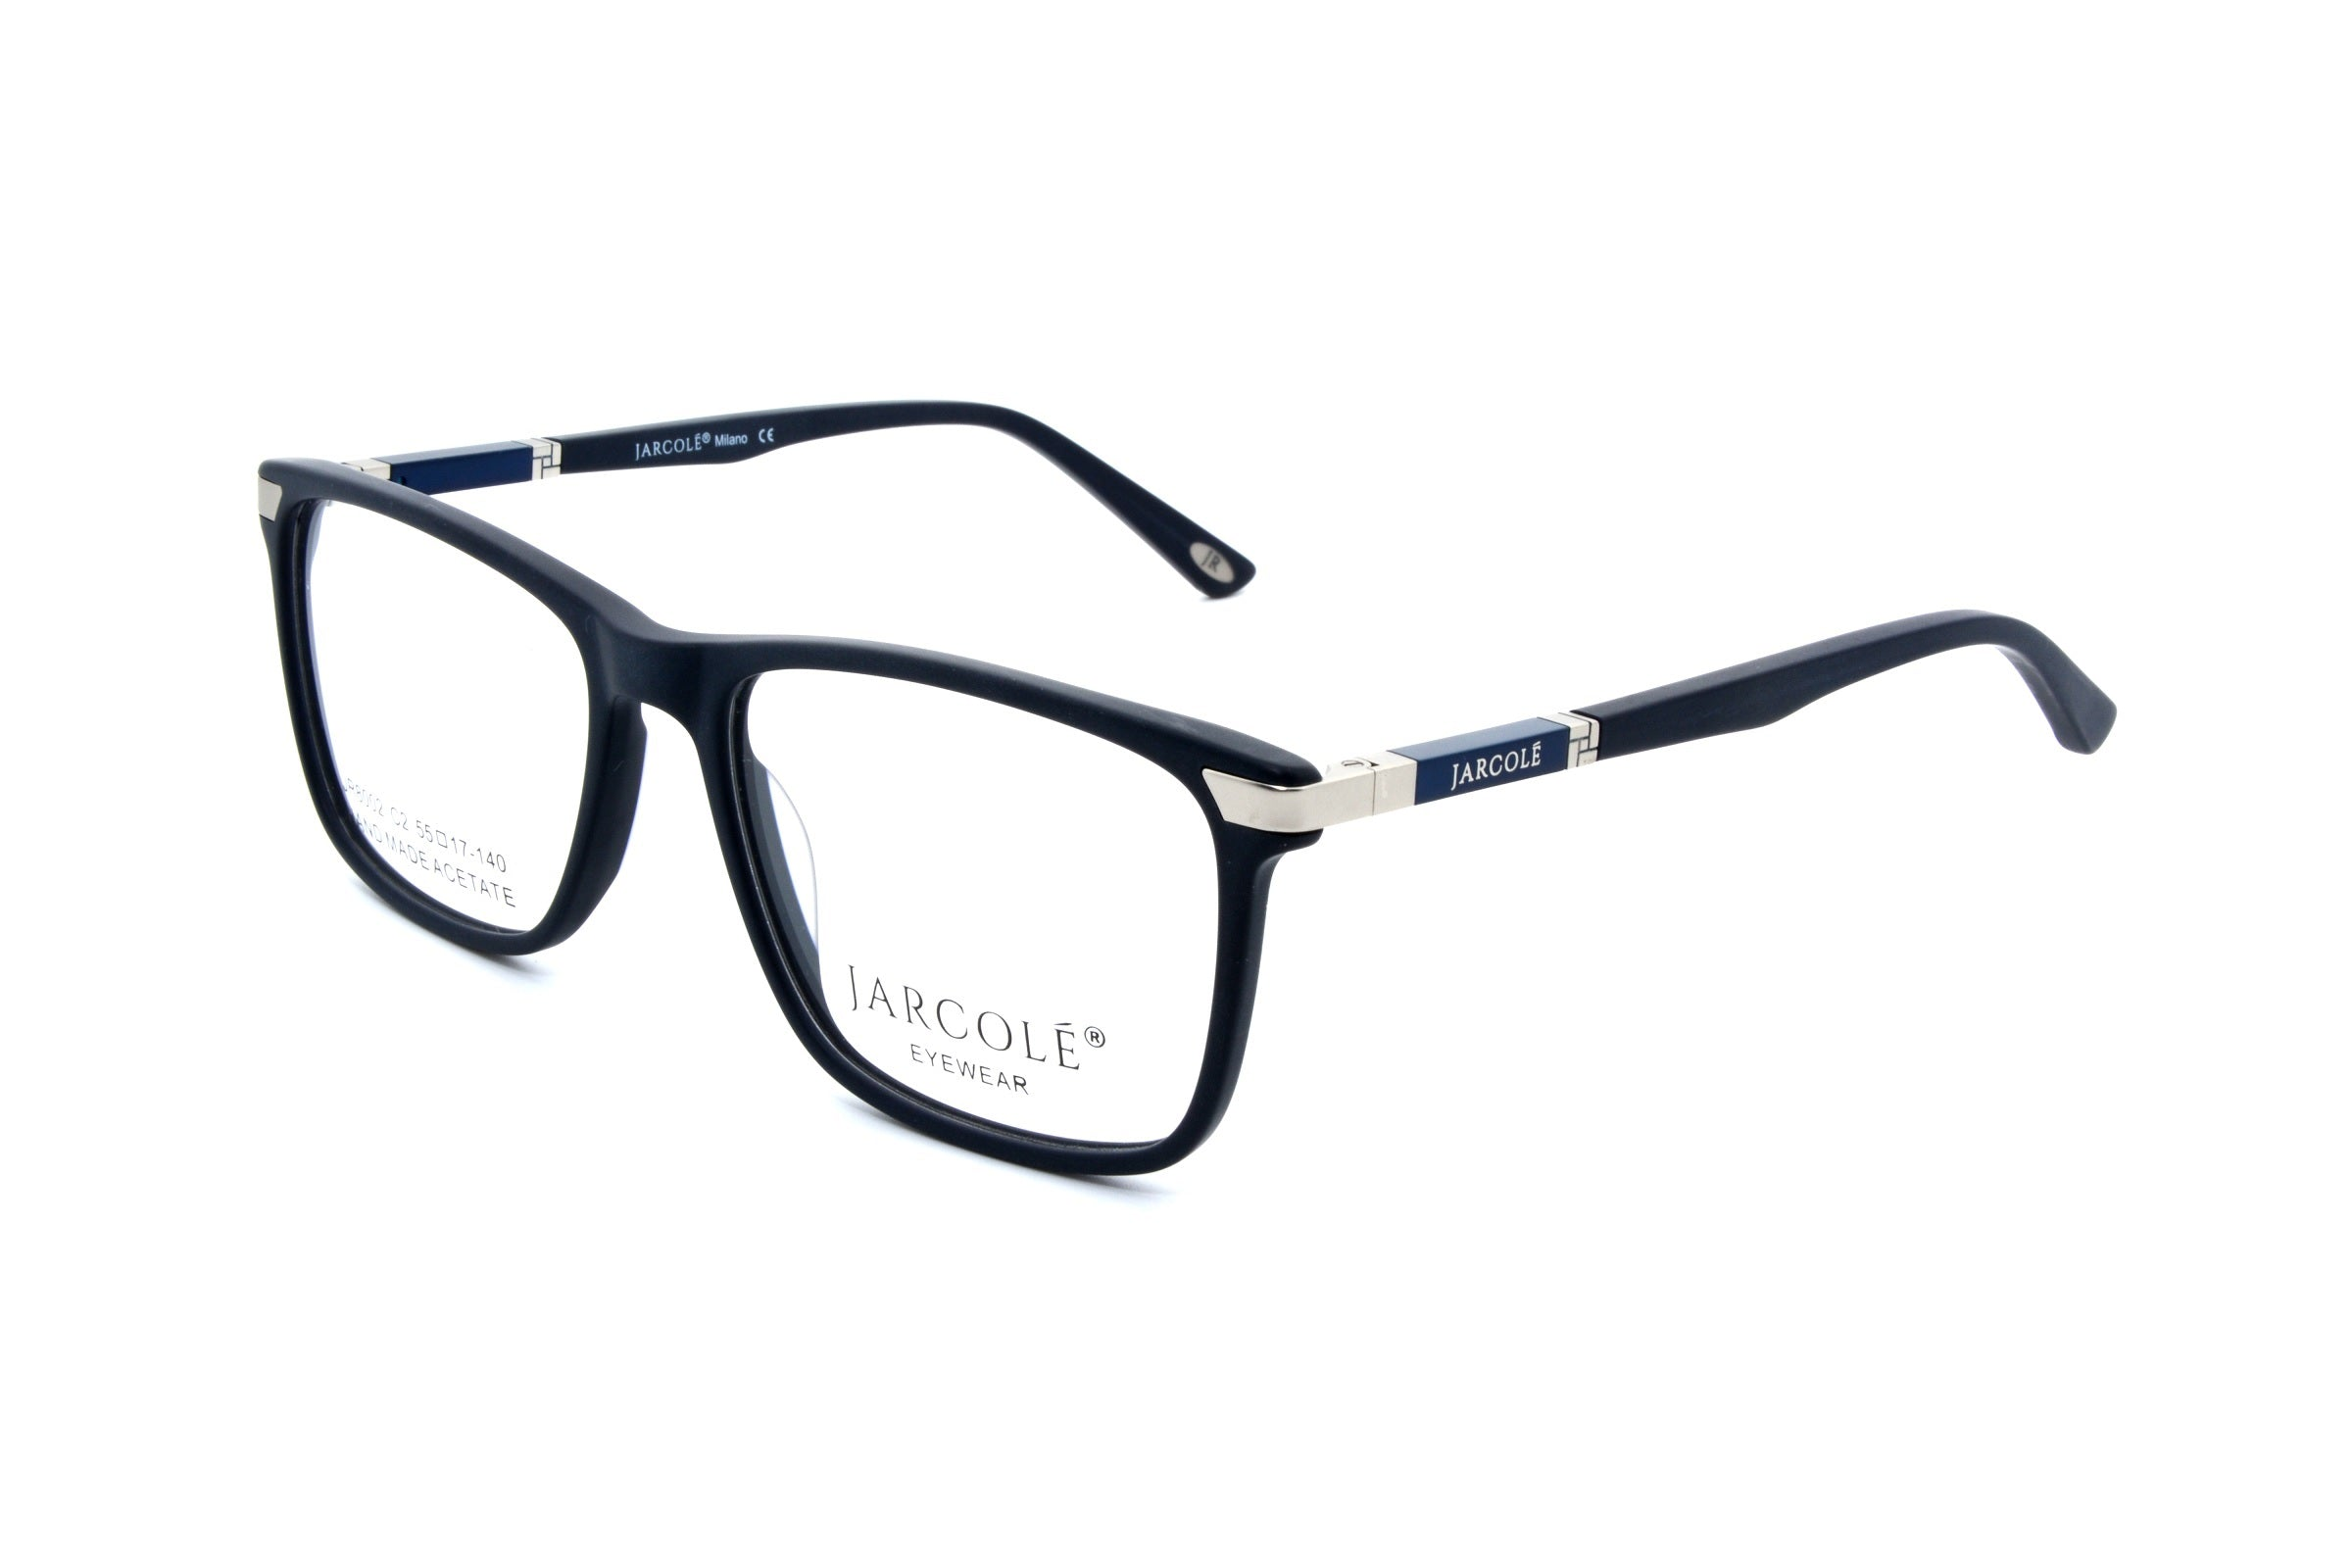 Jarcole eyewear 8002, C2 - Optics Trading